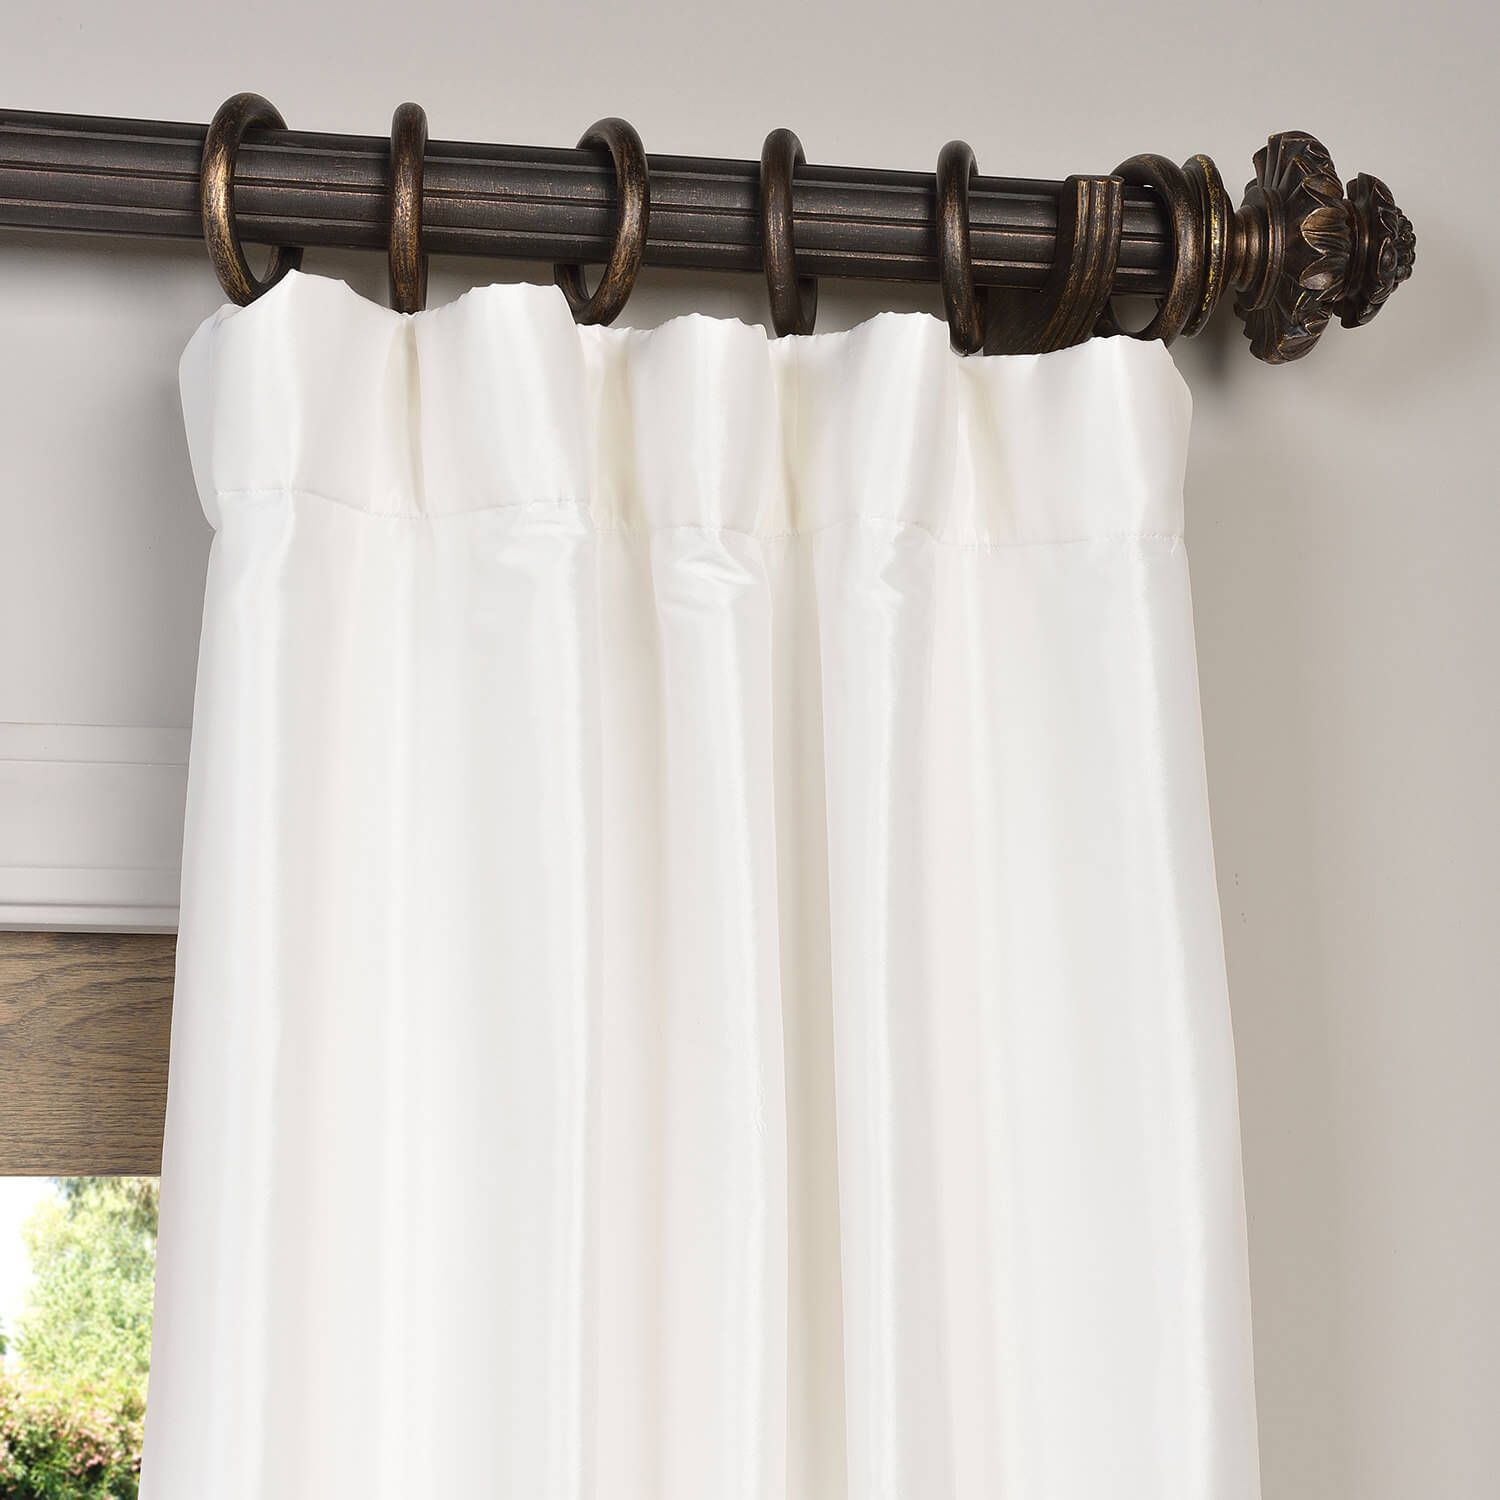 ideas and image curtains discount of charter wear home vs drapes